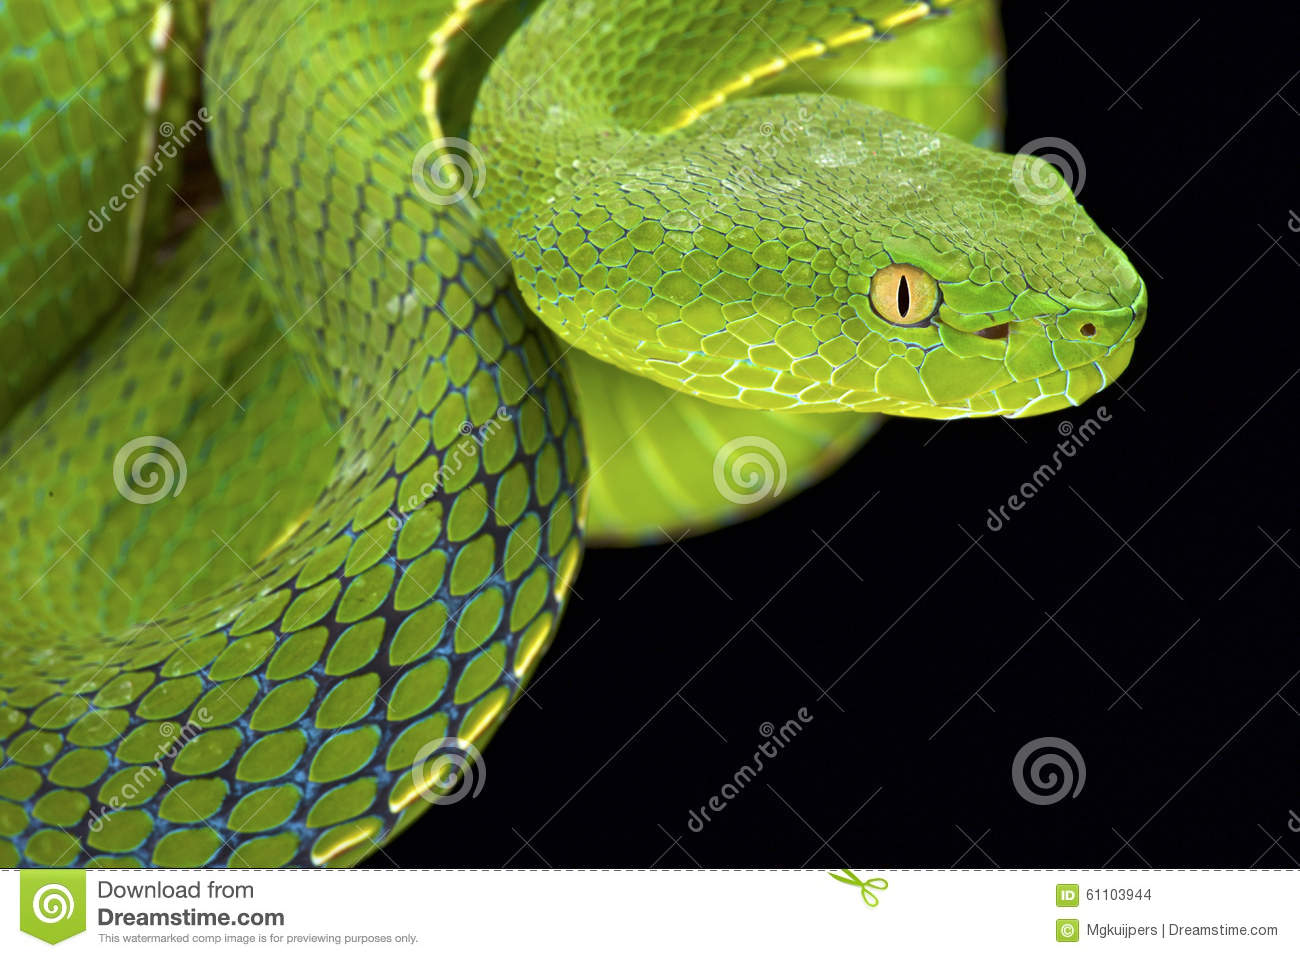 Green Pit Viper clipart #13, Download drawings